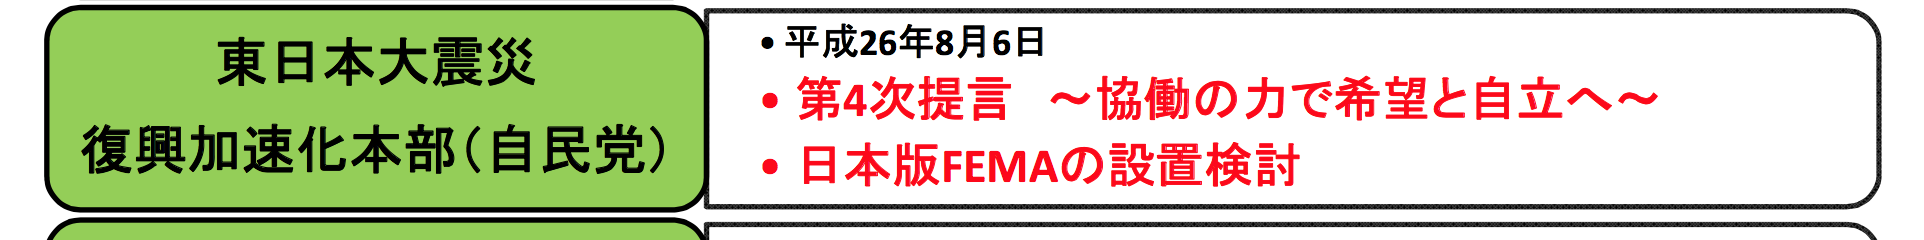 20151013012246c88.png